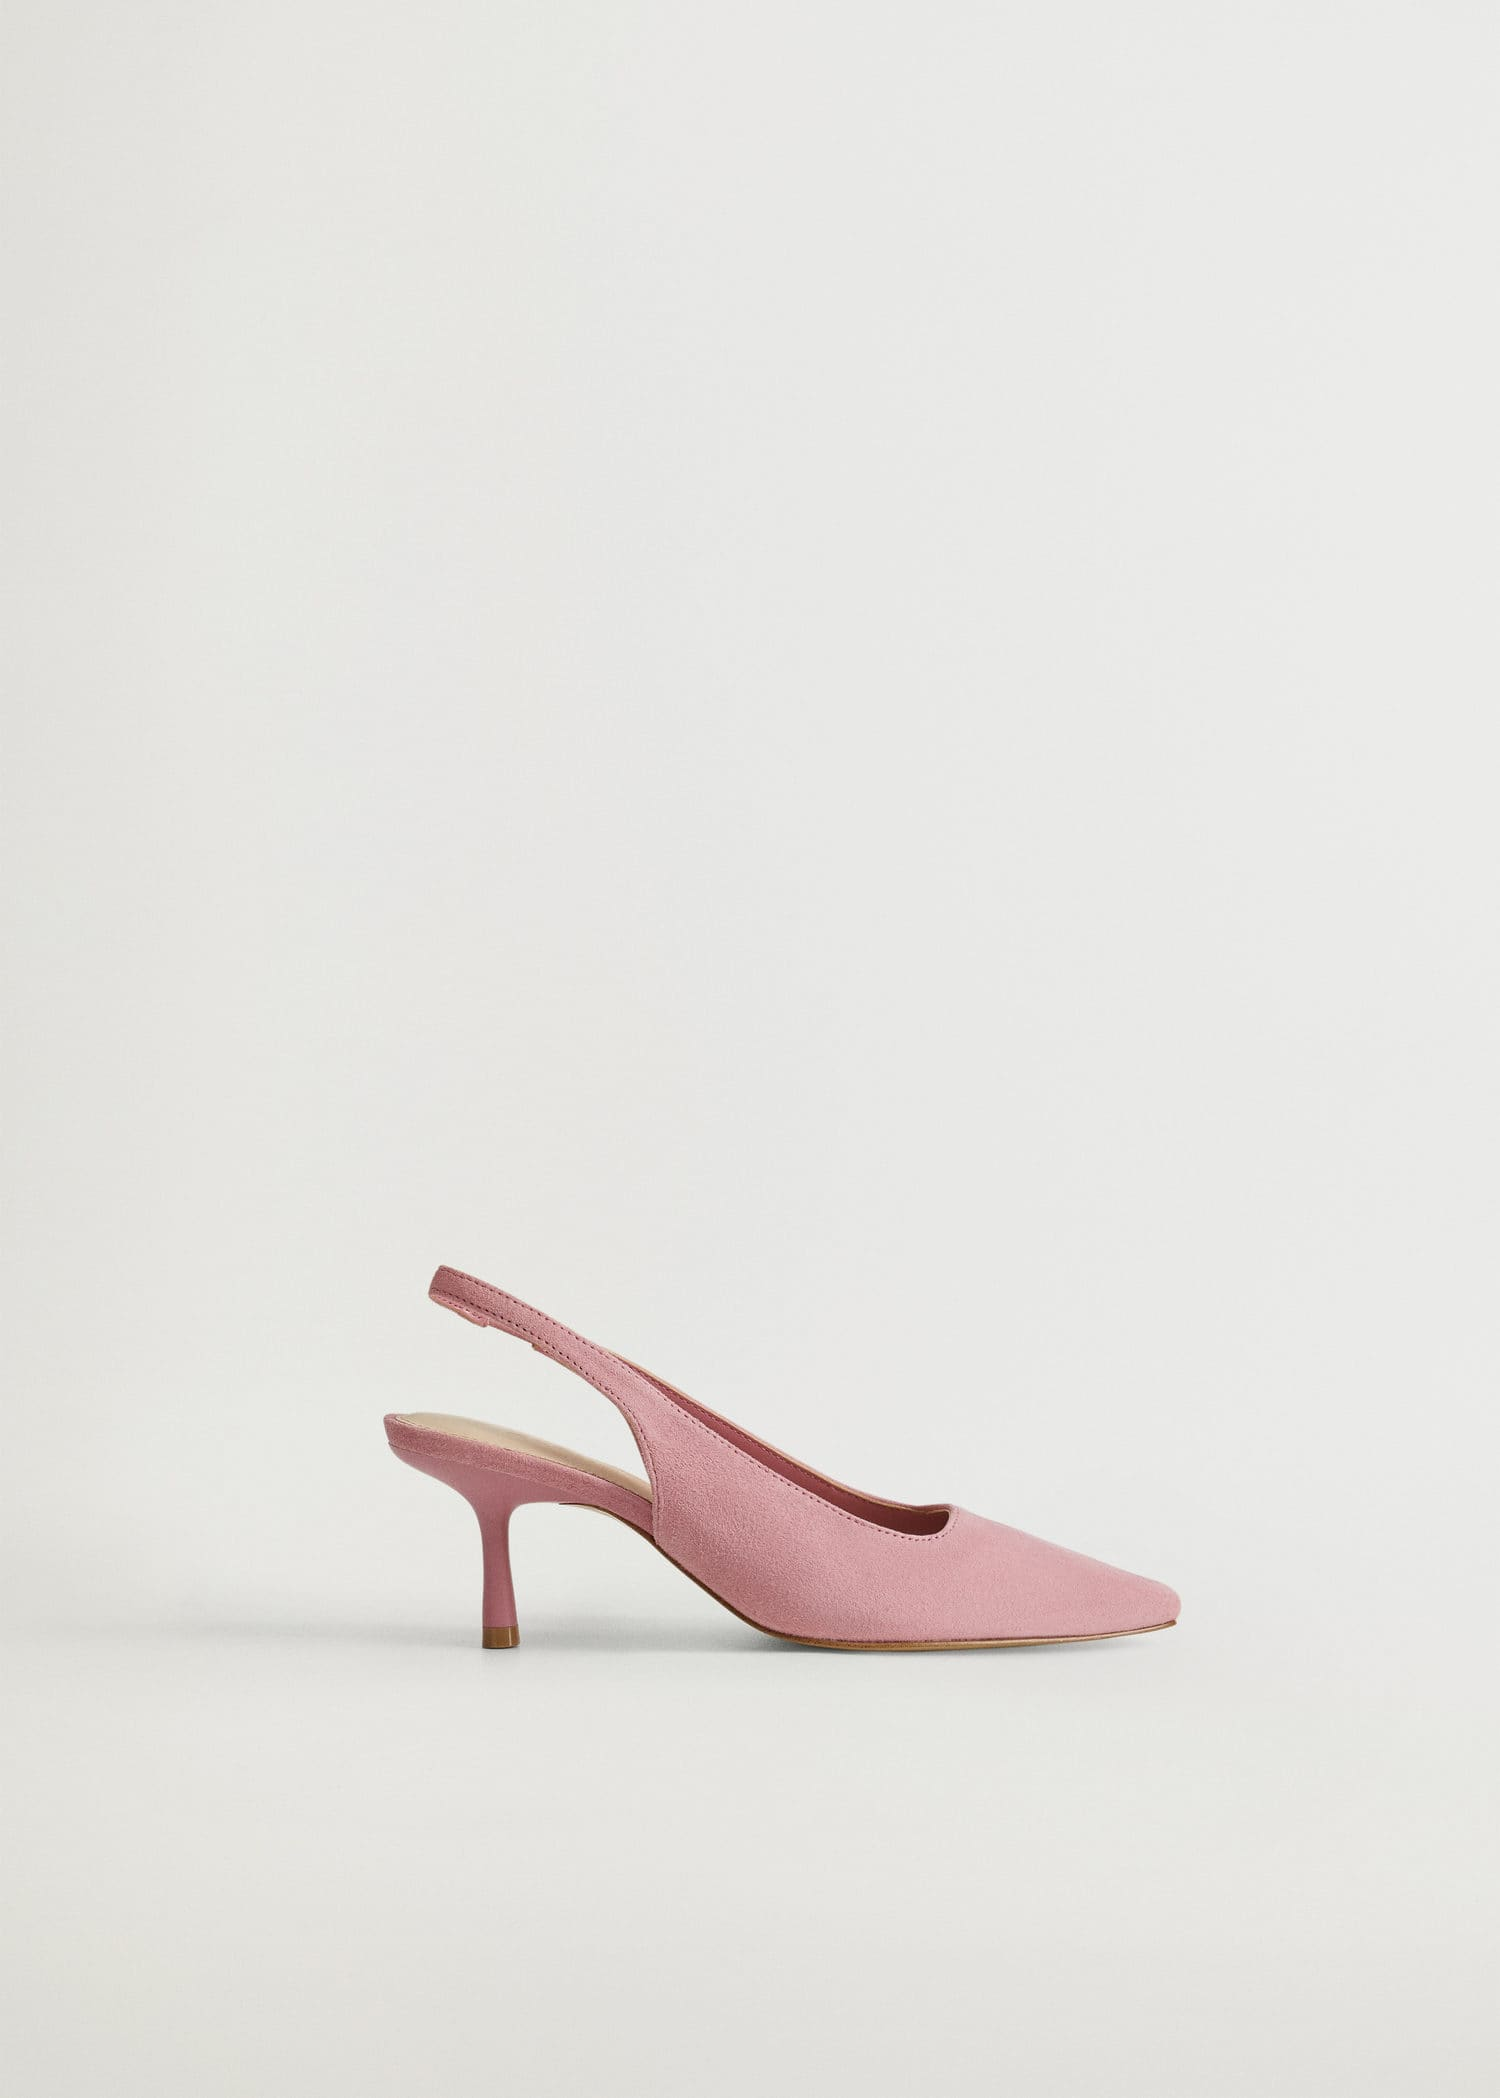 Pointed toe leather shoes - Women